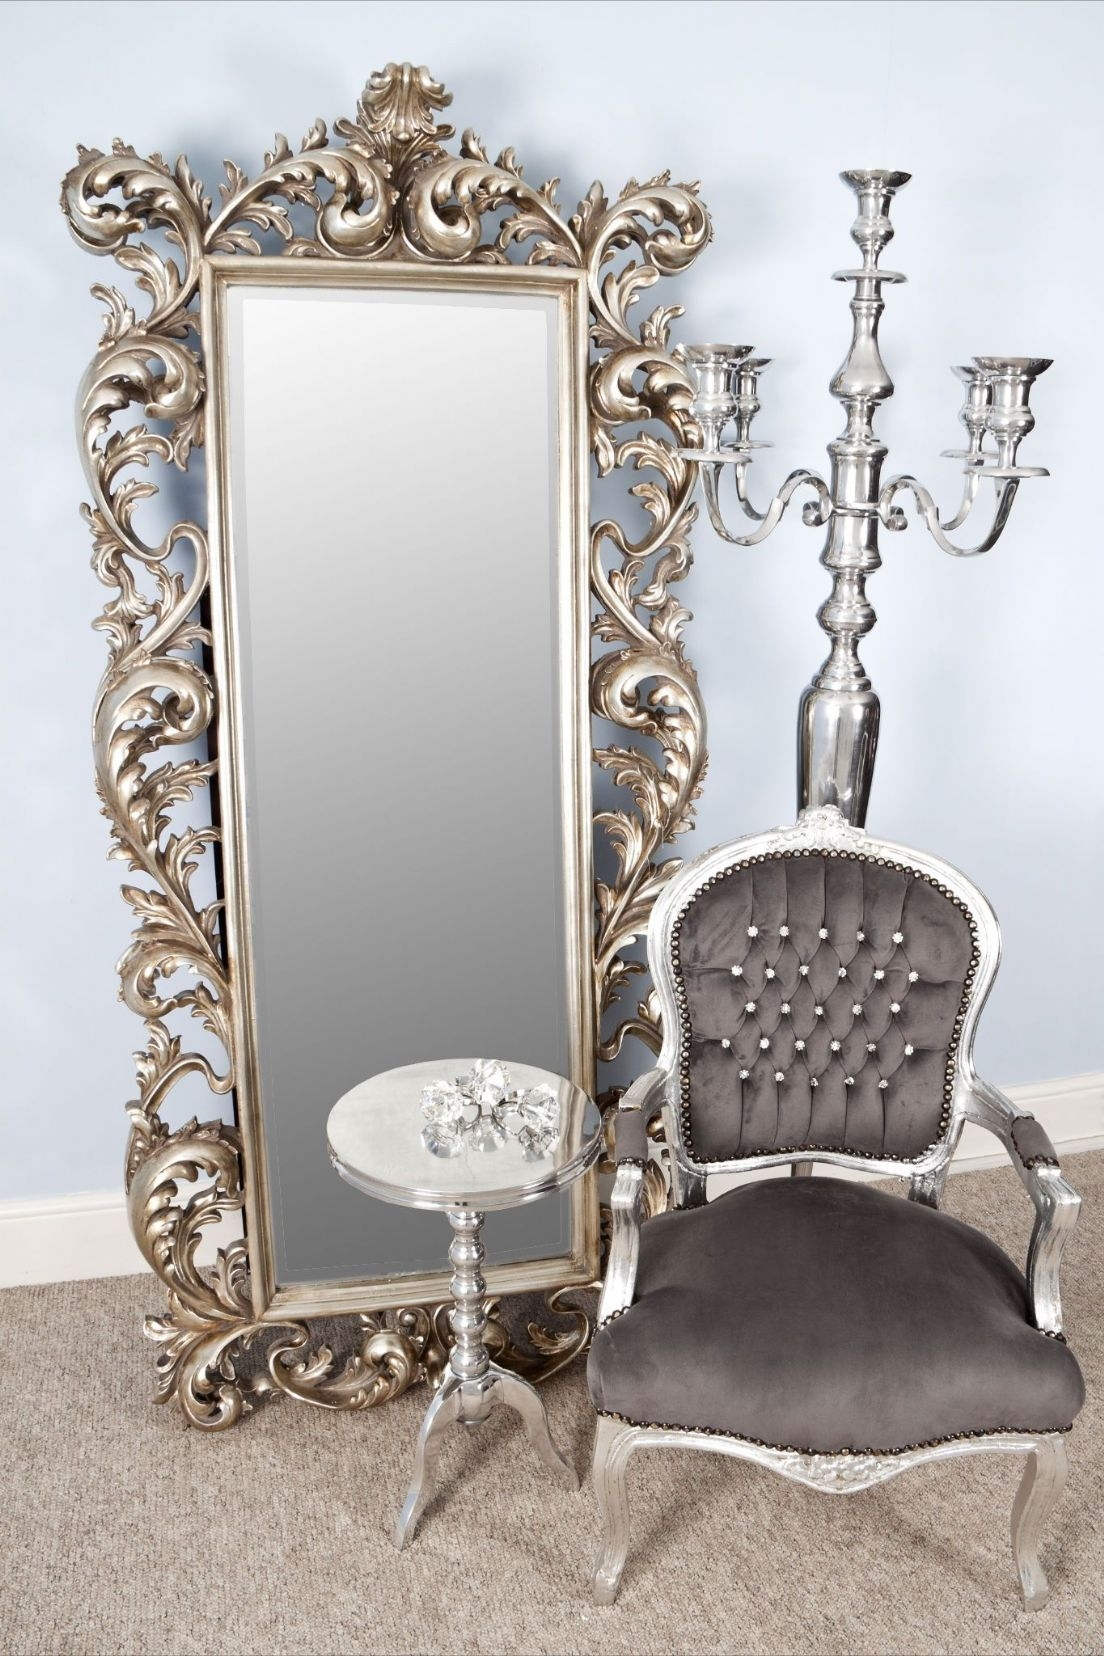 Rococo Mirrors Exclusive Mirrors Within Victorian Mirrors For Sale (Image 14 of 15)